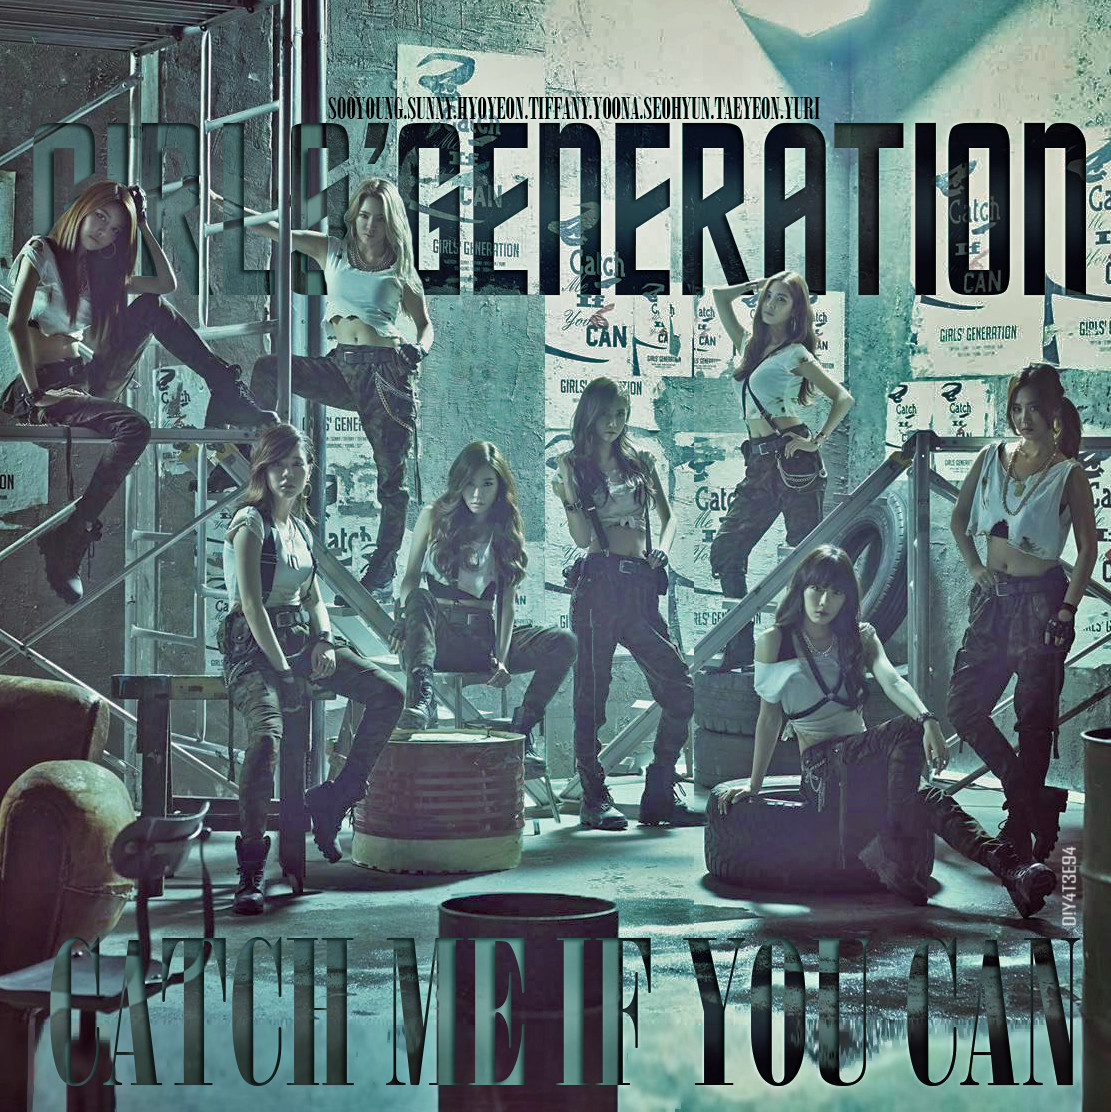 Snsd Catch Me If You Can By Diyeah9tee4 On Deviantart